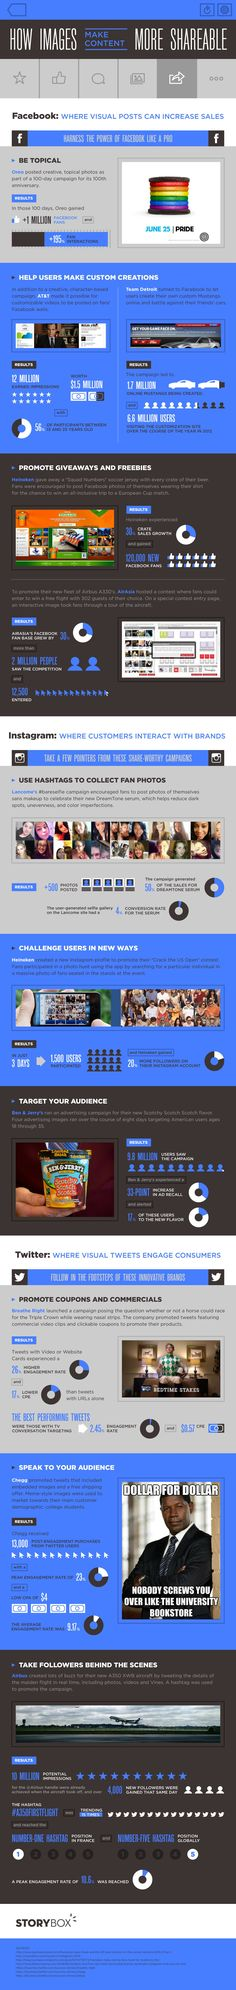 How Images Make Content More Shareable - #infographic #socialmediatips